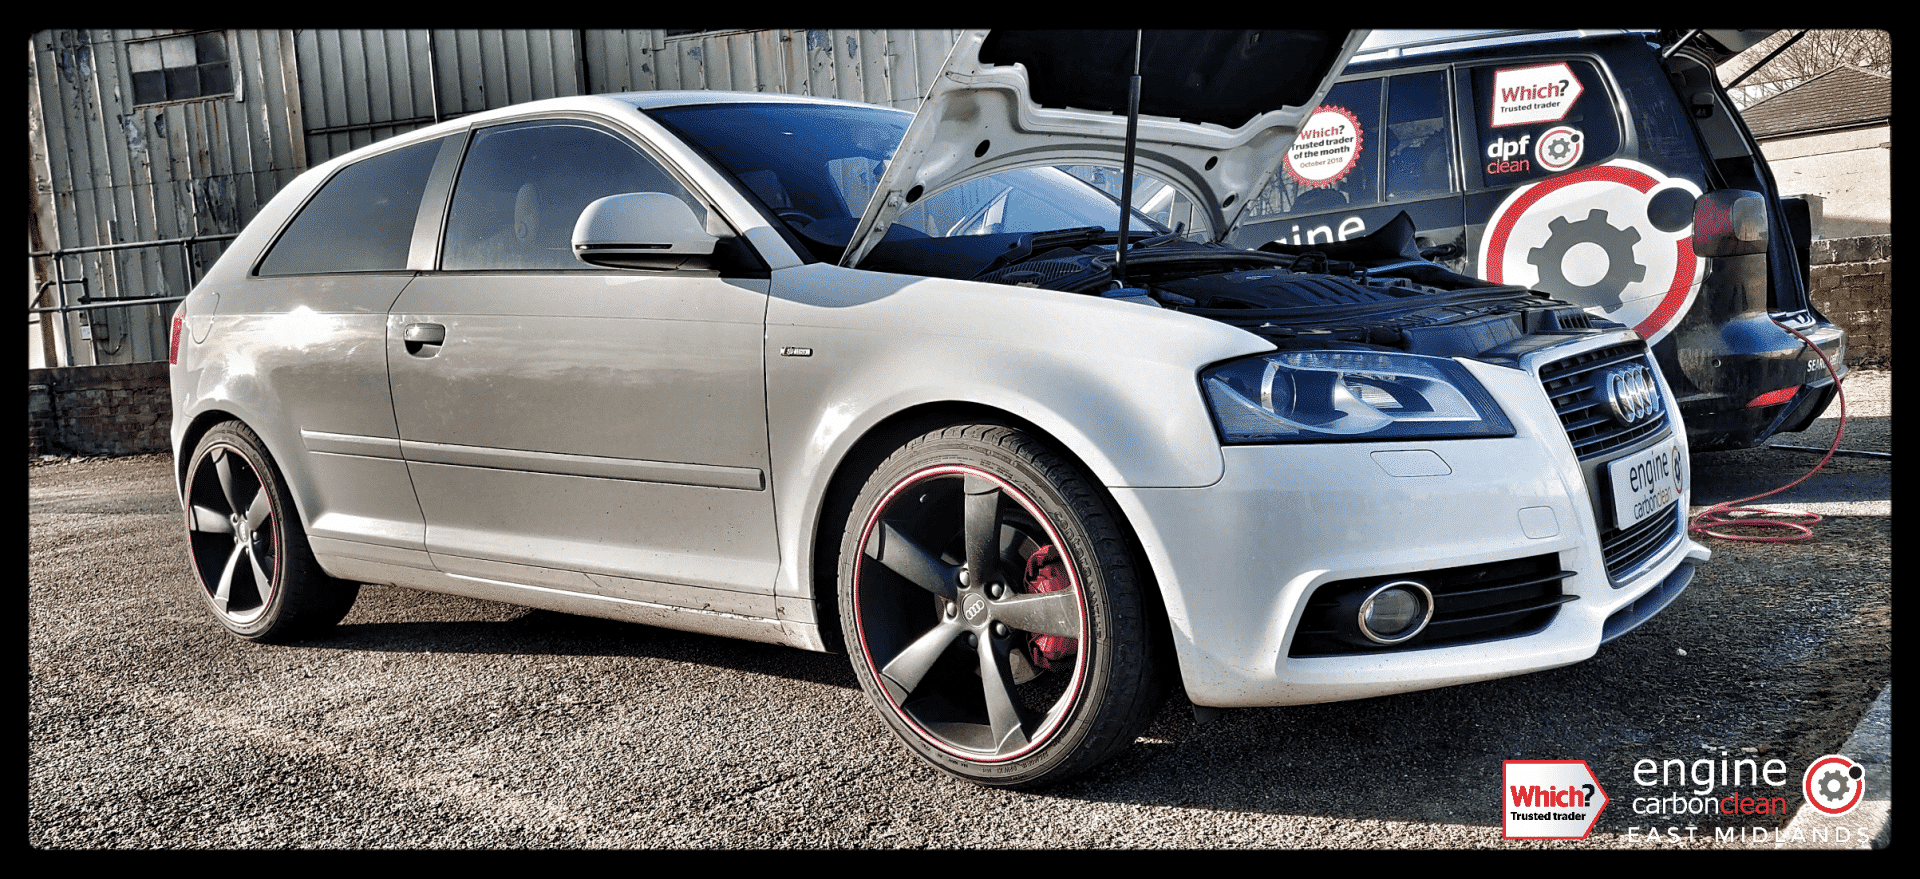 Engine Carbon Clean - Audi A3 2.0 TDI (2009 - 96,903 miles) - post DPF Clean